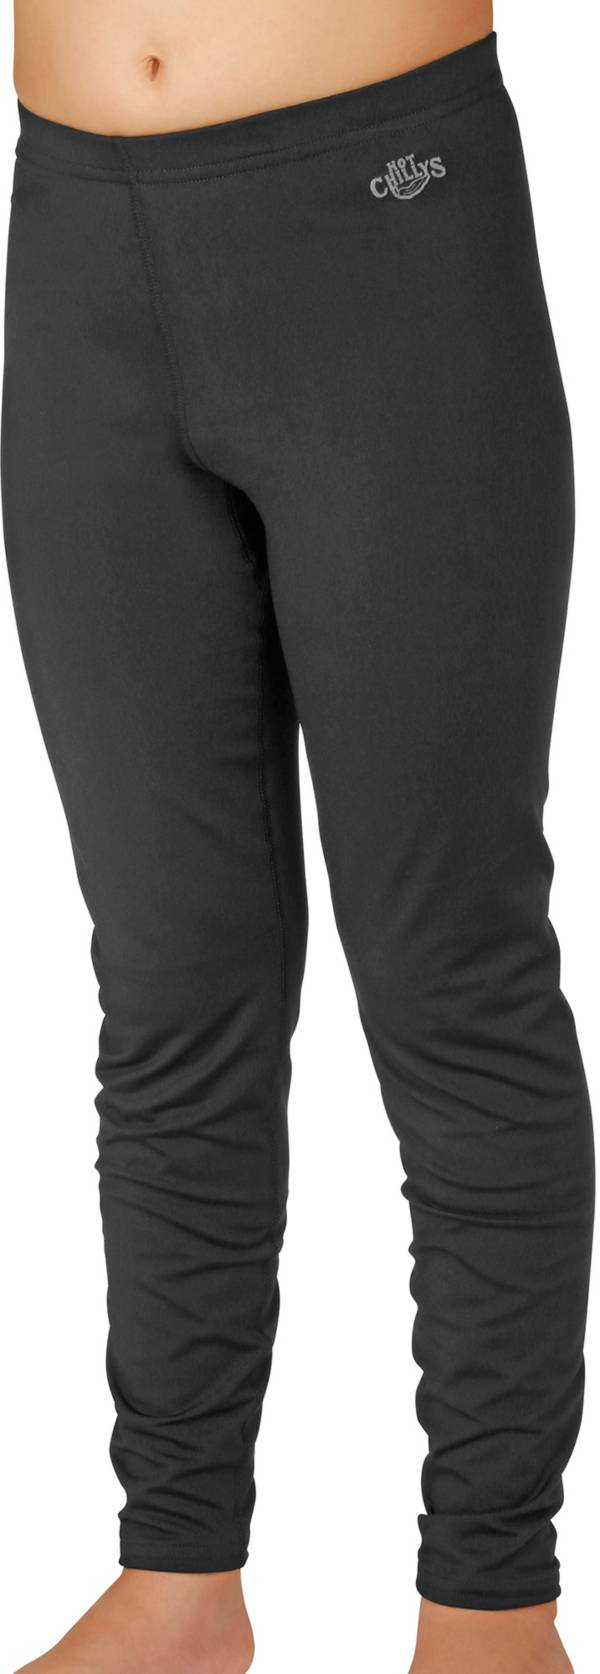 Hot Chillys Youth Micro-Elite Chamois Tights product image